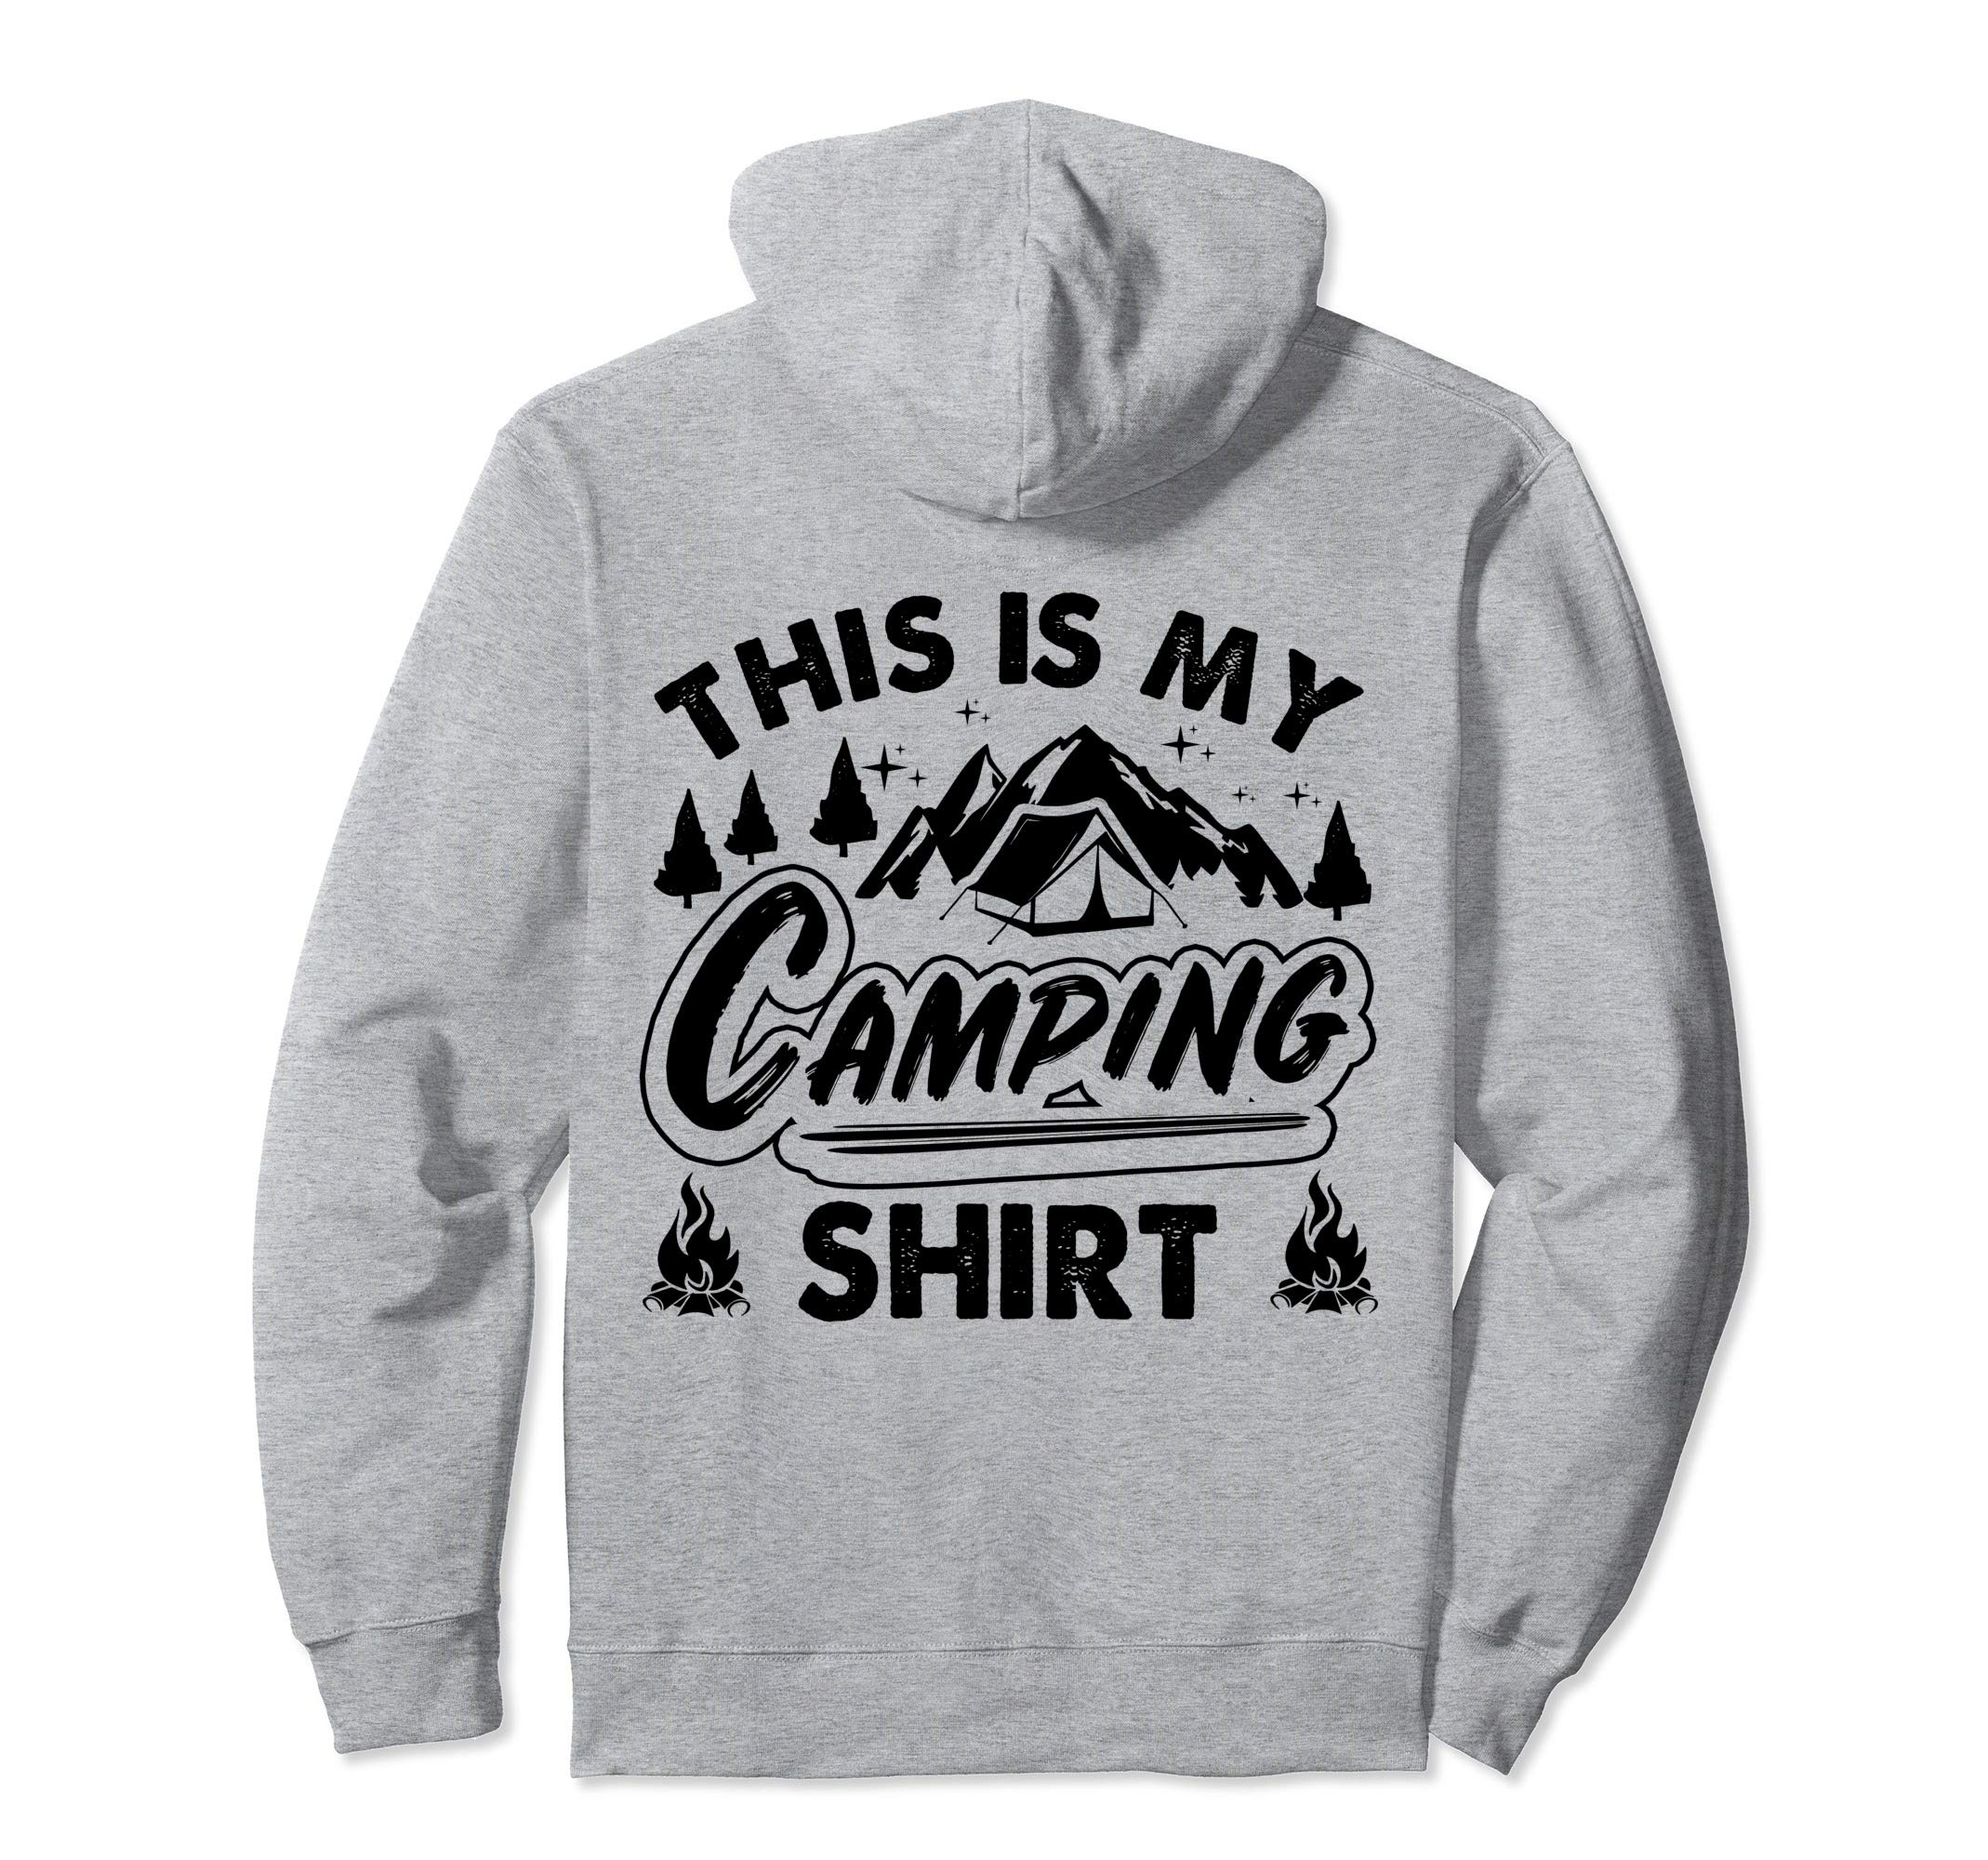 This Is My Camping Shirt Funny Camper Gift Pullover Hoodie by Funny Camping Gifts Tizy Apparel